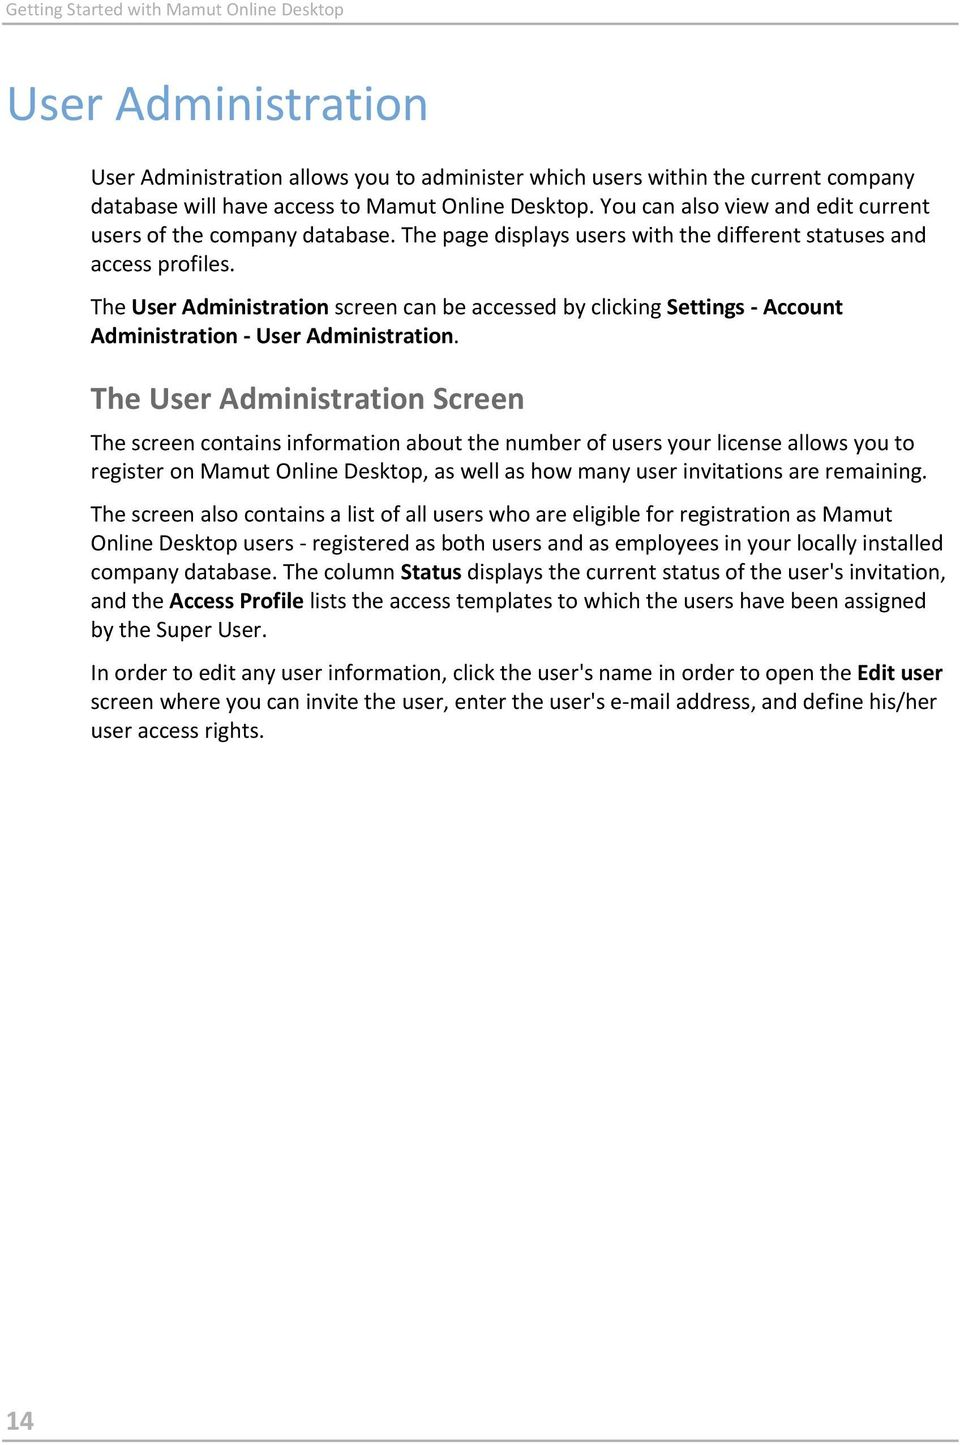 The User Administration screen can be accessed by clicking Settings - Account Administration - User Administration.